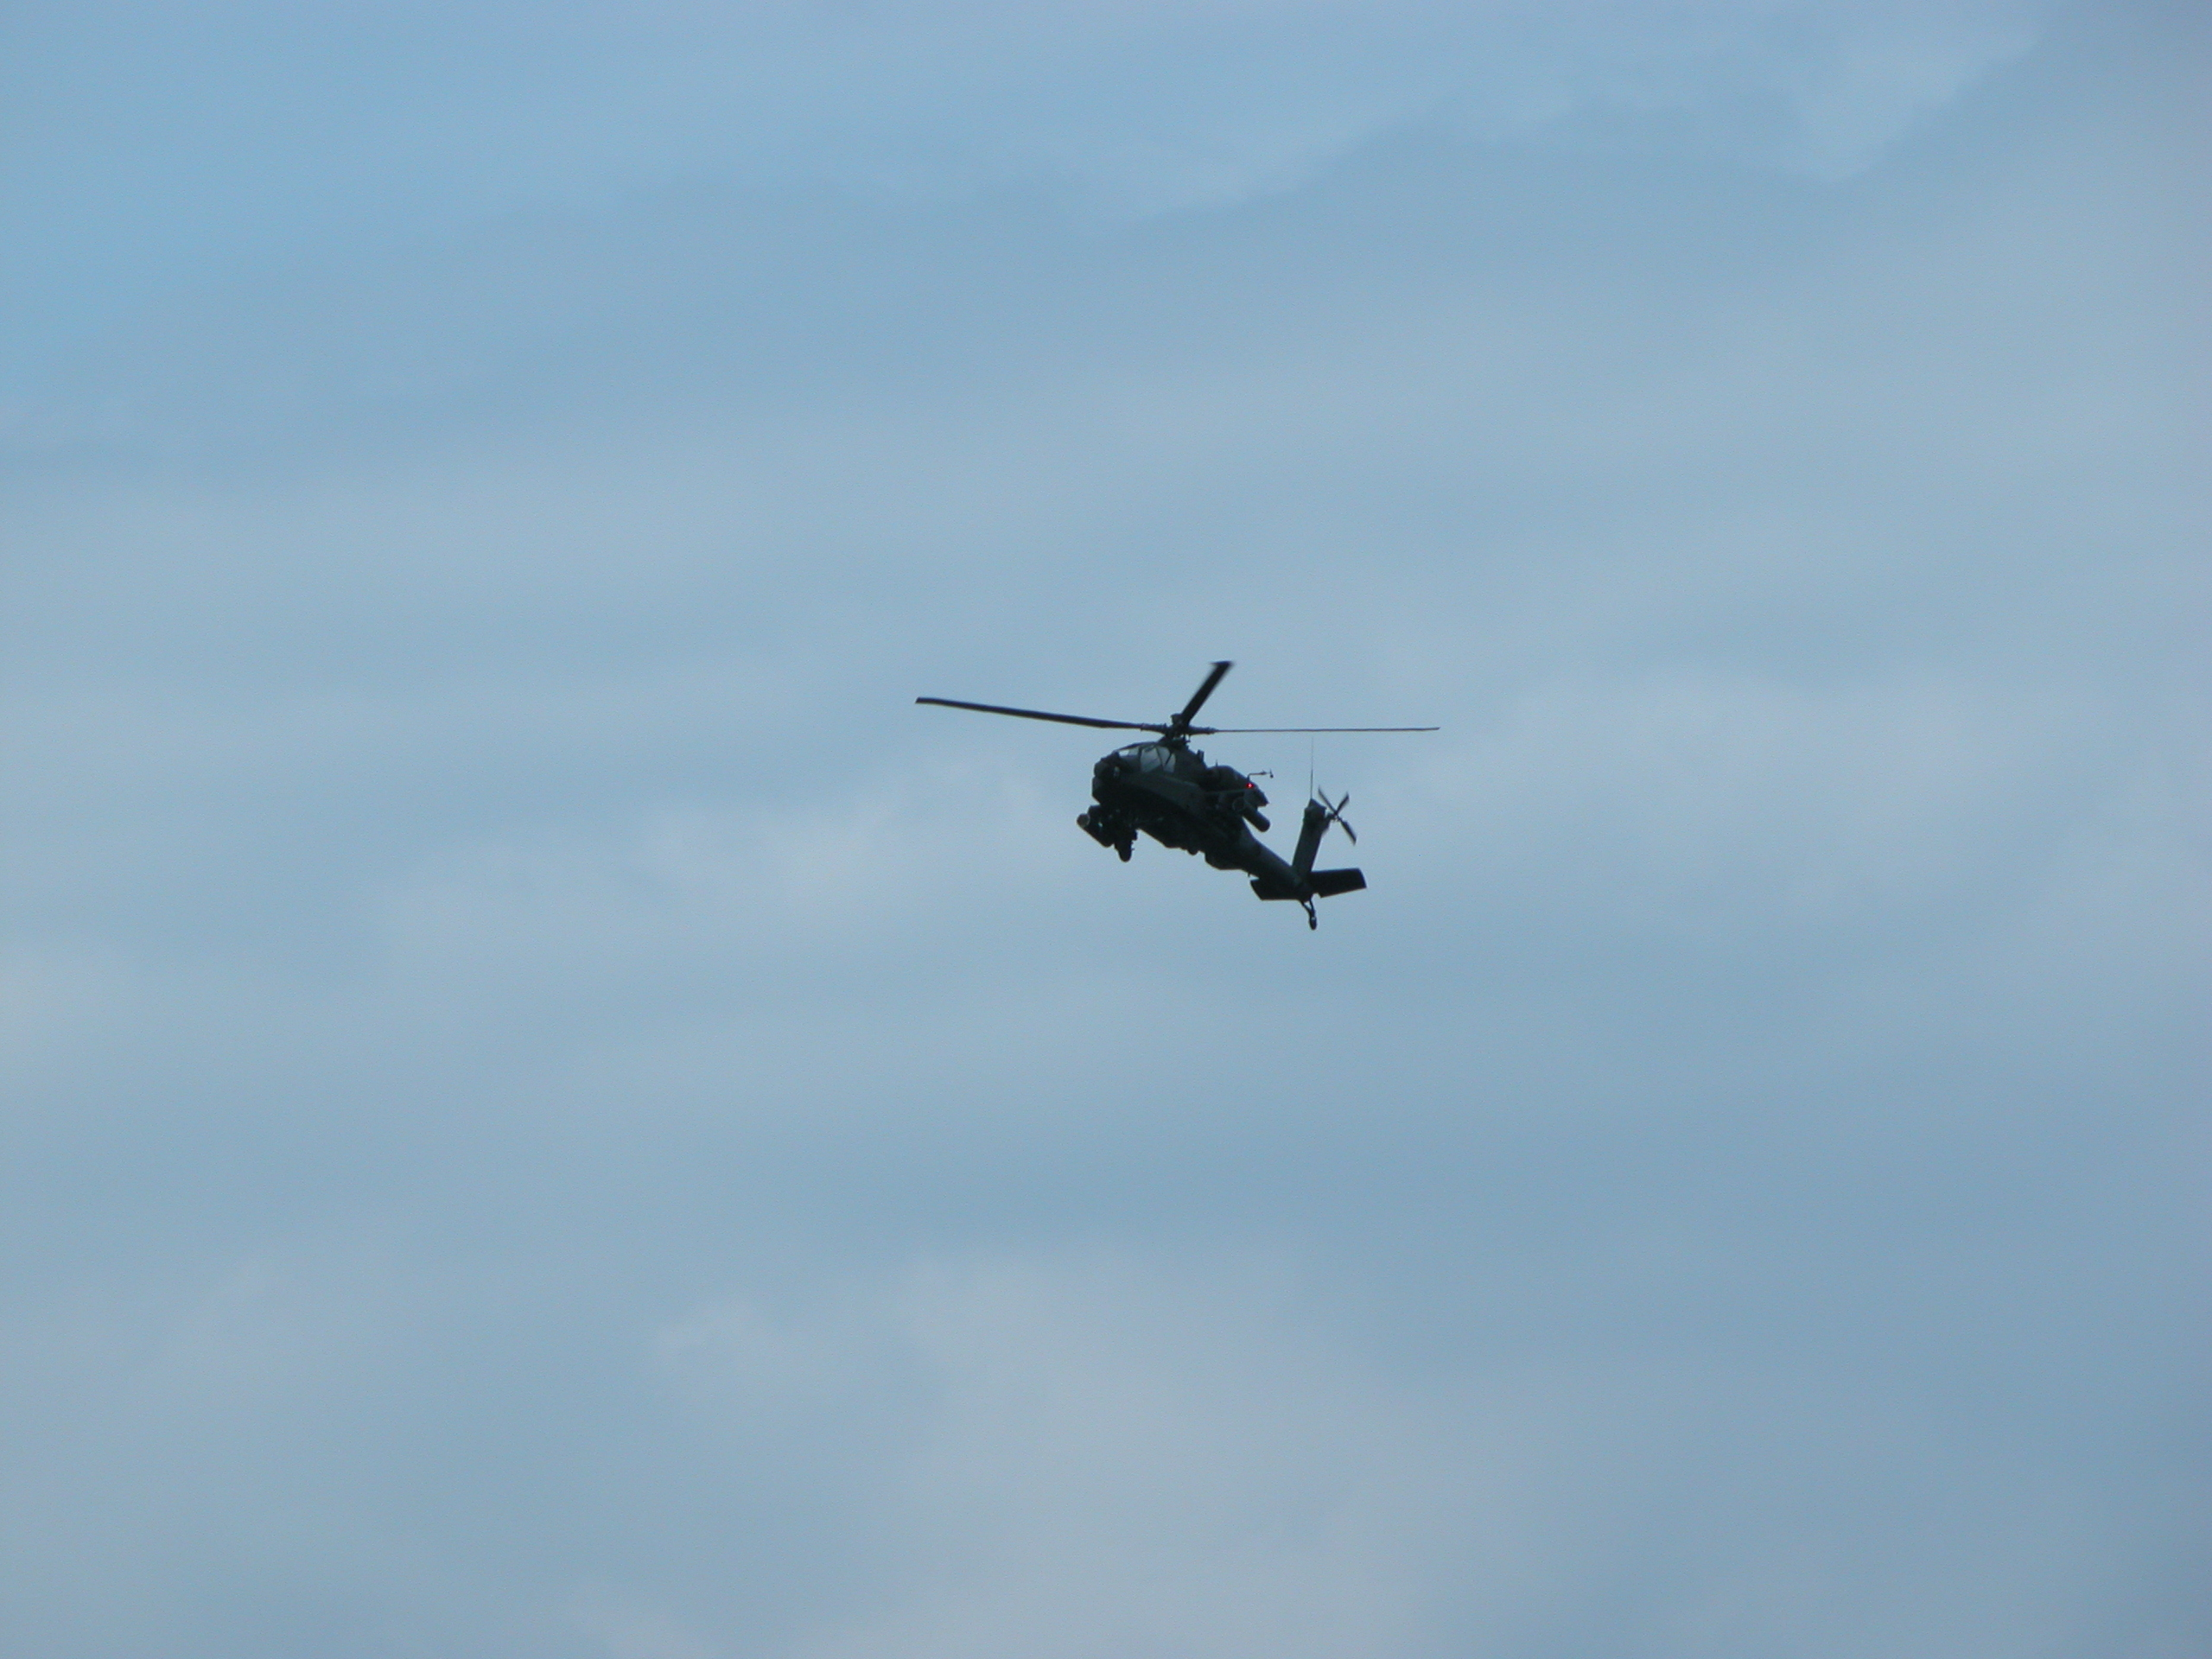 vehicles air apache chopper helicopter side flying silhouette images